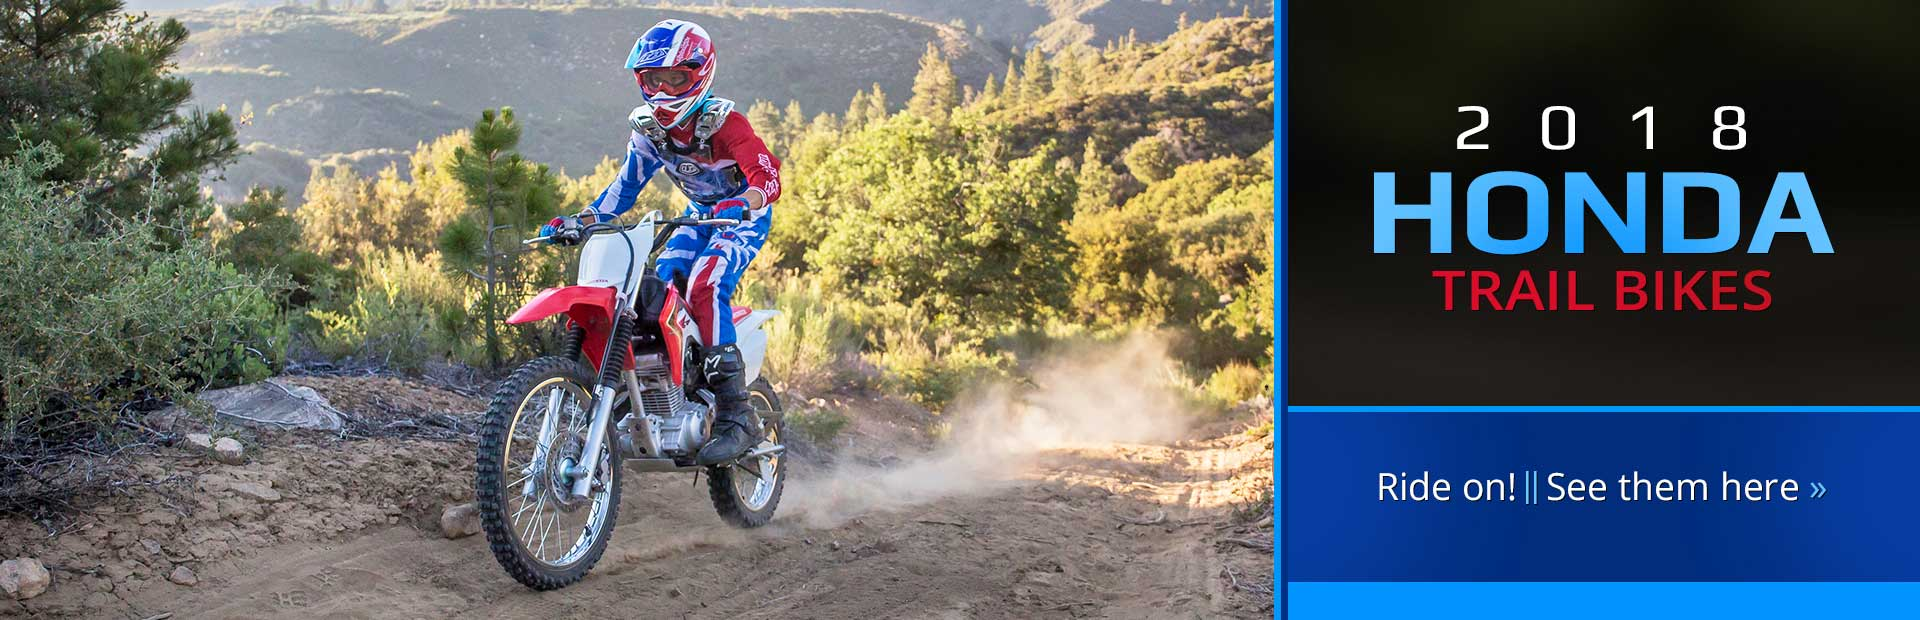 hight resolution of 2018 honda trail bikes click here to view our selection